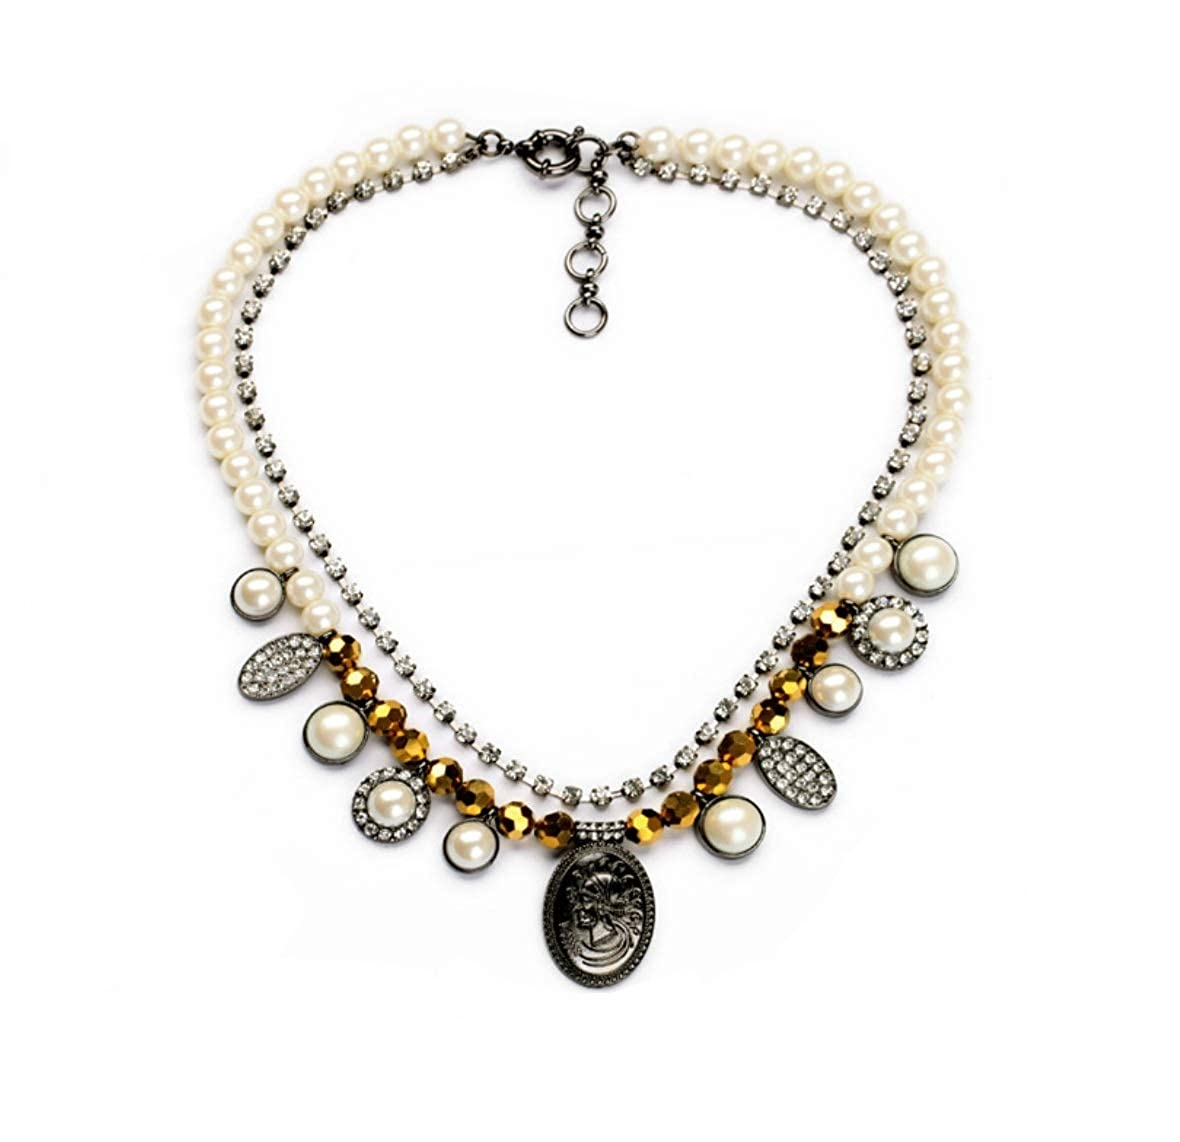 WYWT Vintage Pearl Crystal Rhinestone Multi-Layers Choker with Coin Pendant Retro Statement Chains Necklace